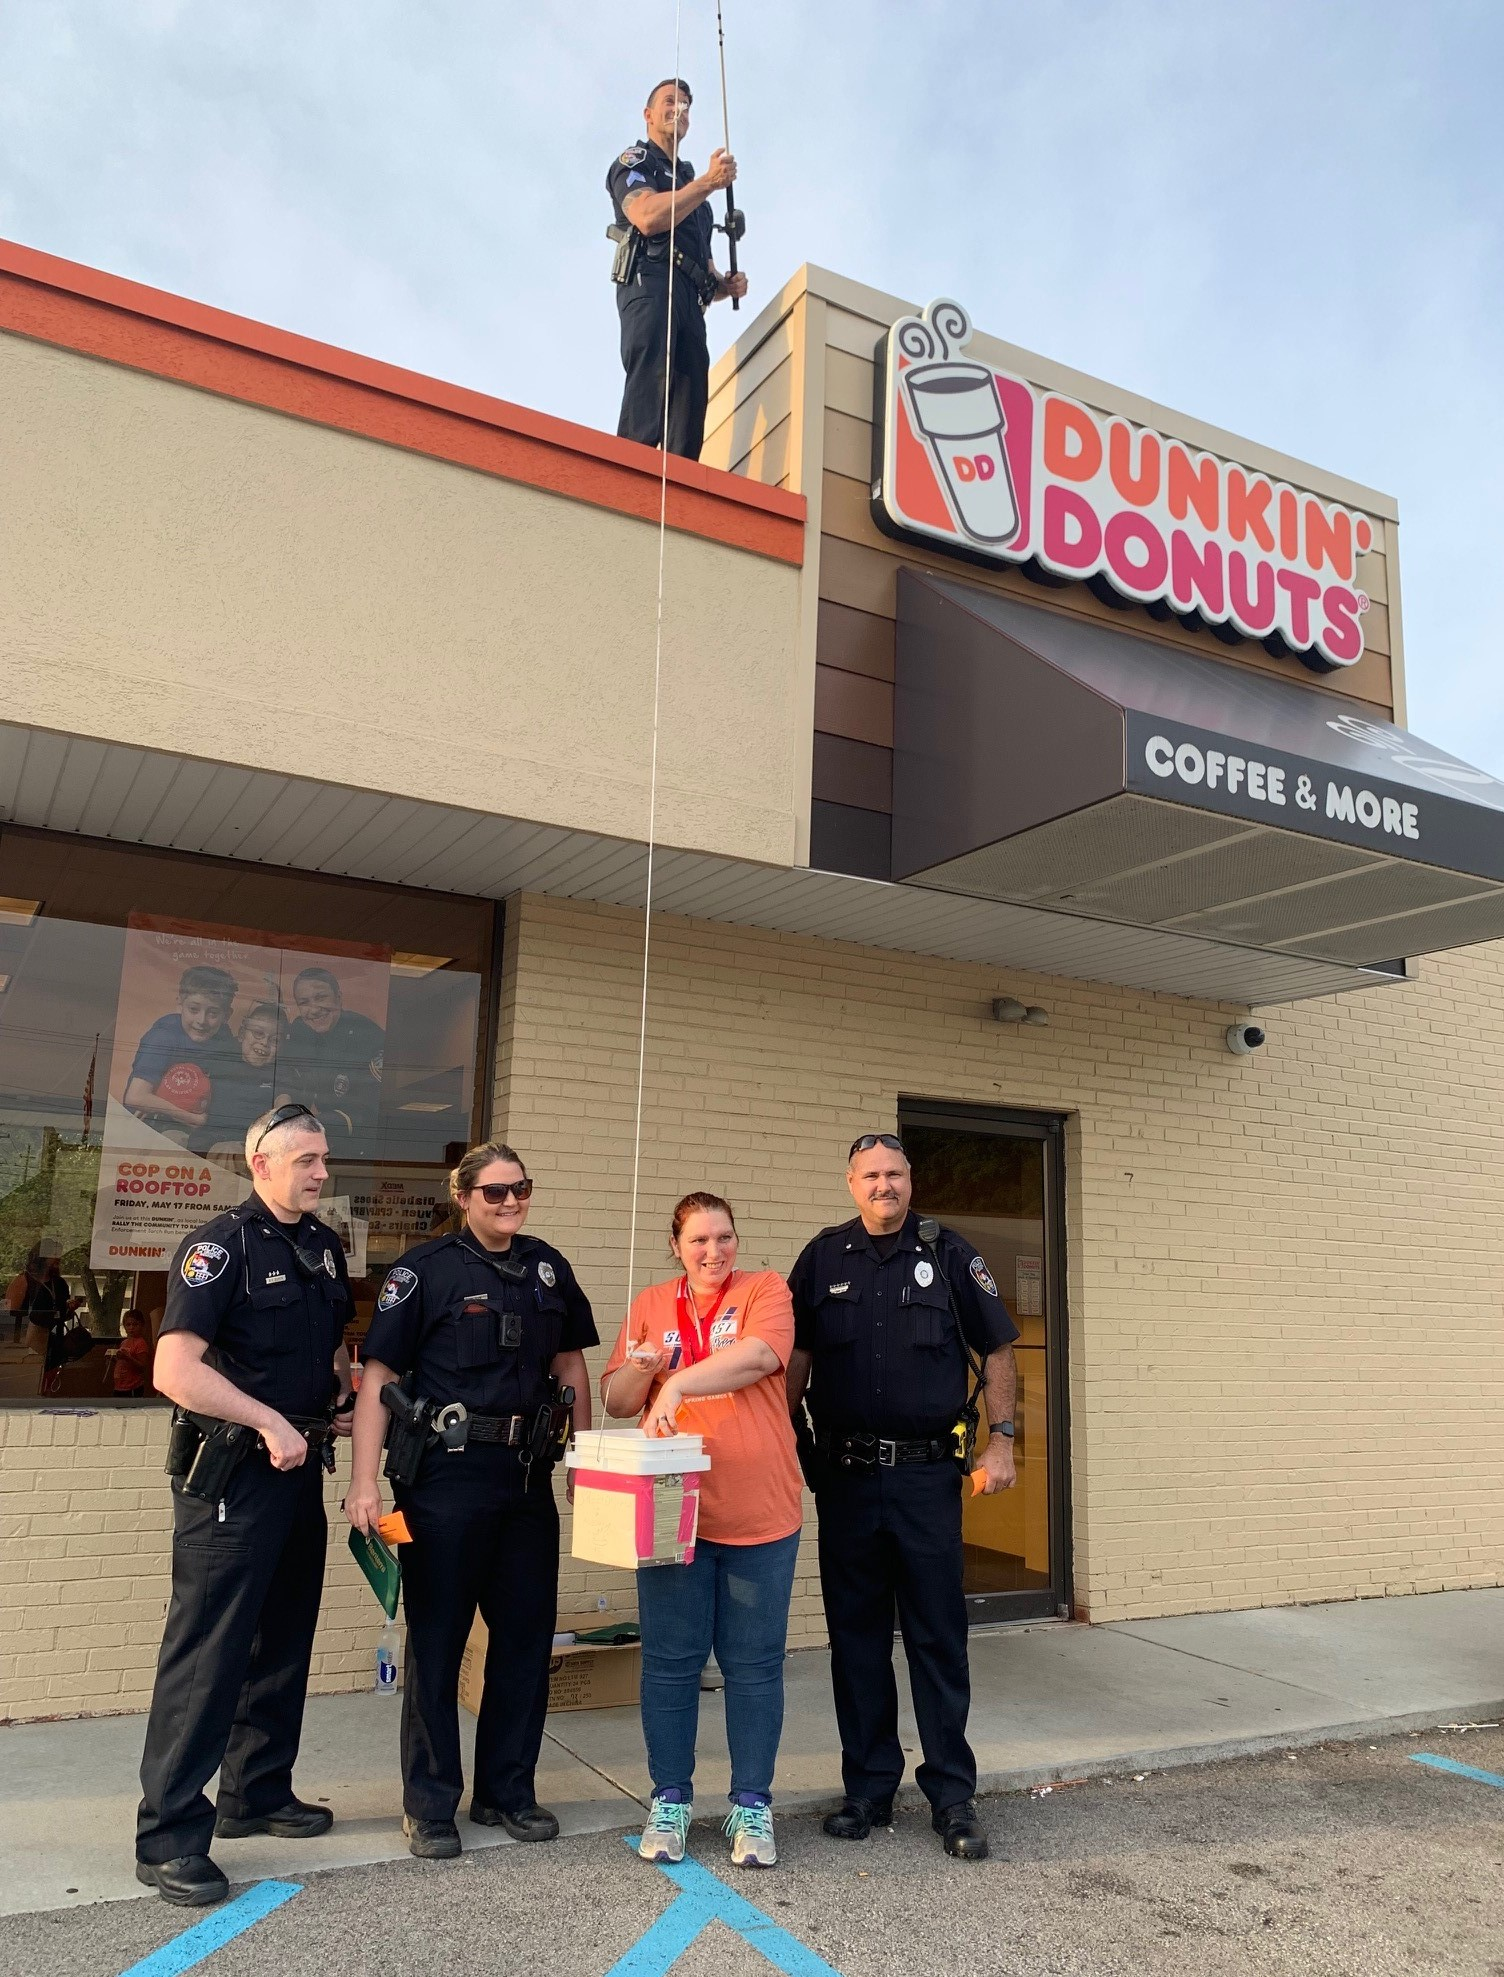 A law enforcement officer stands on the roof of a Dunkin' Donuts holding a tip jug on a fishing line with an athlete and other officers on the ground